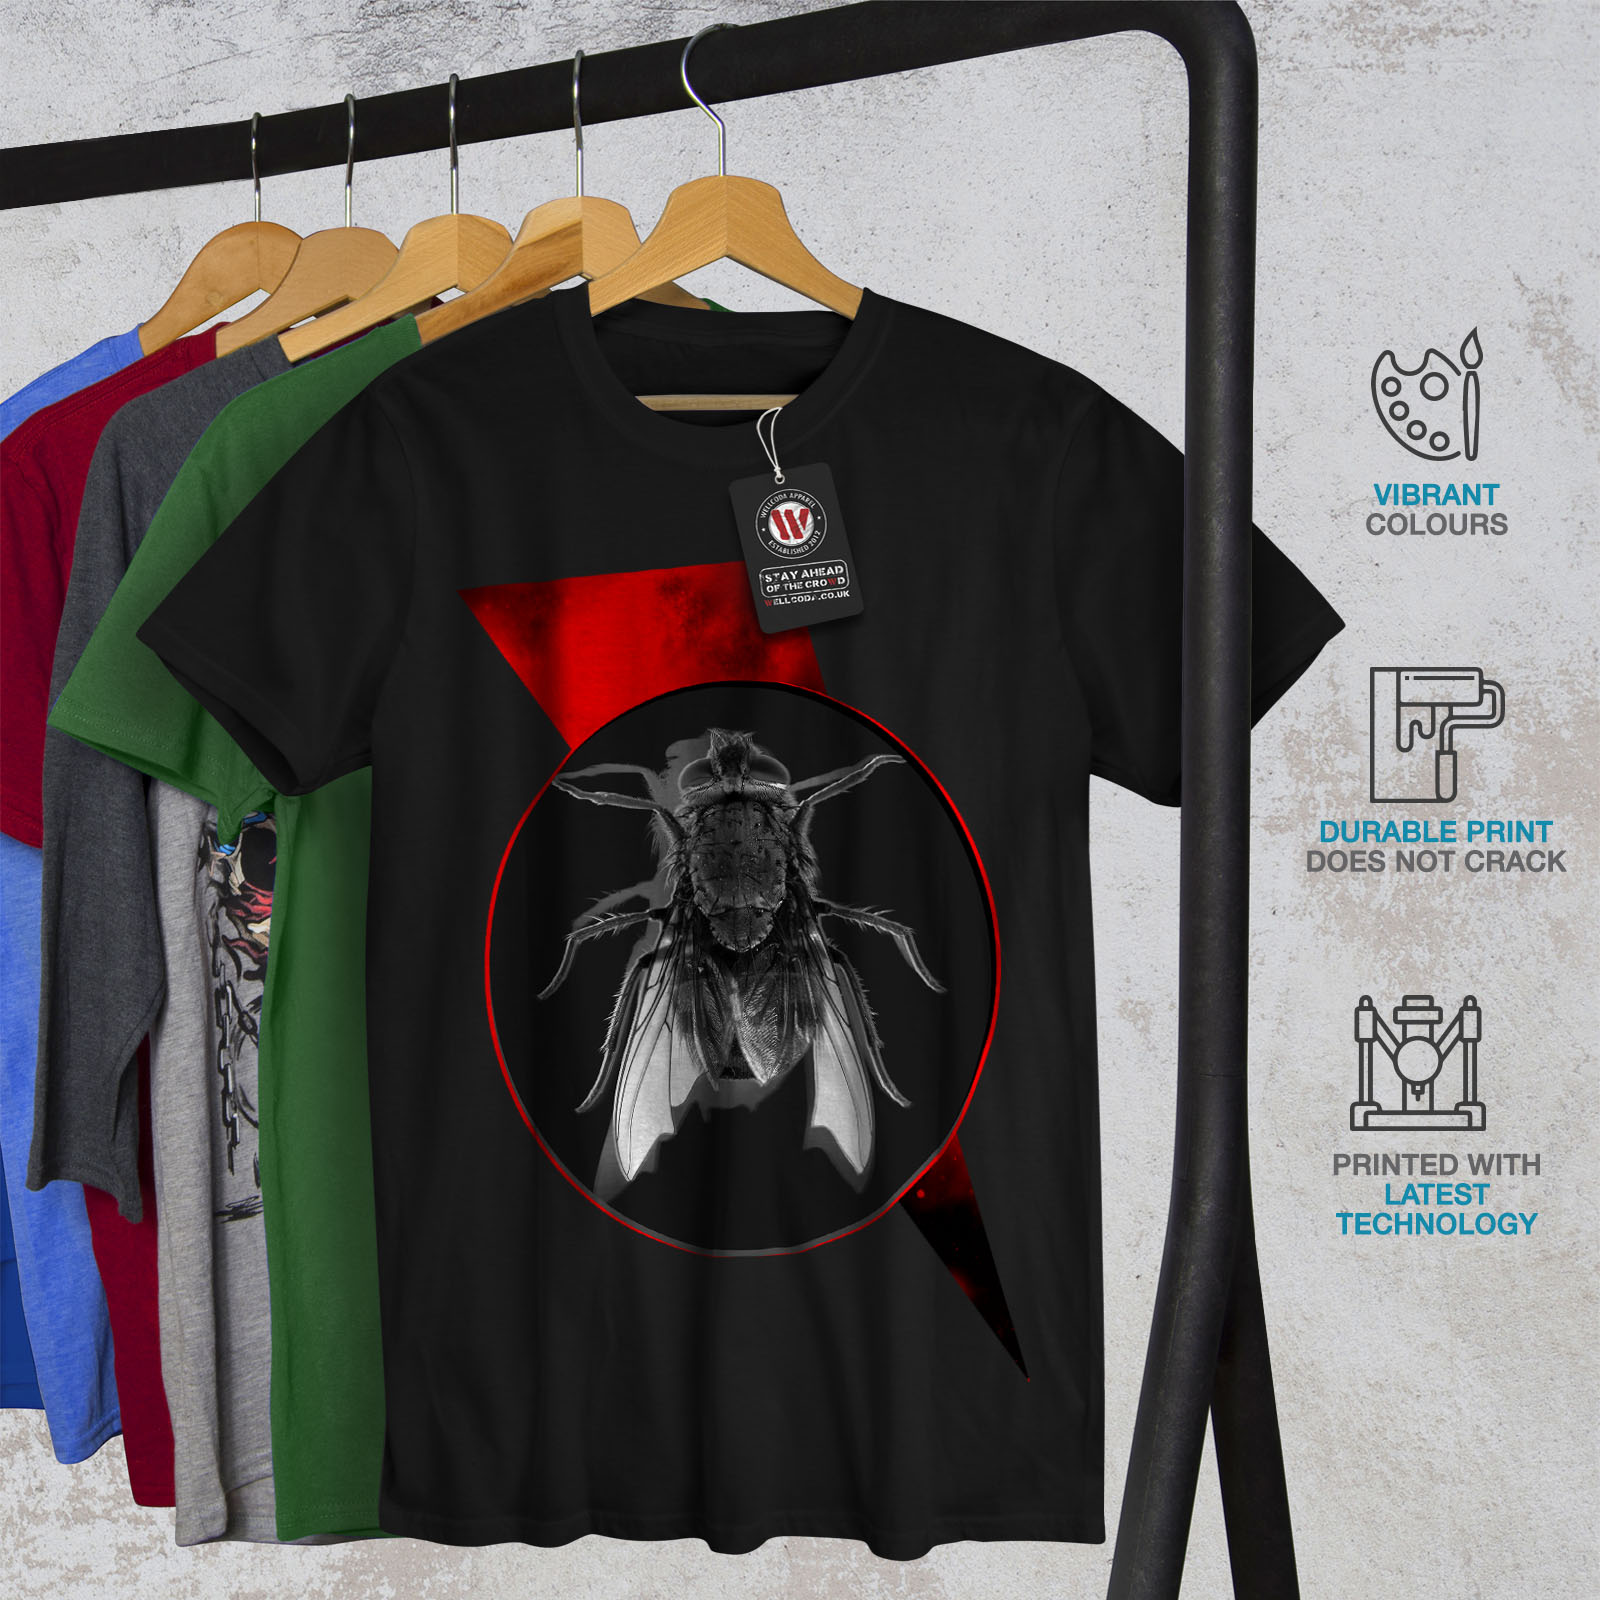 Wellcoda Fly Bug Insect Animal Mens T-shirt Insect Graphic Design Printed Tee